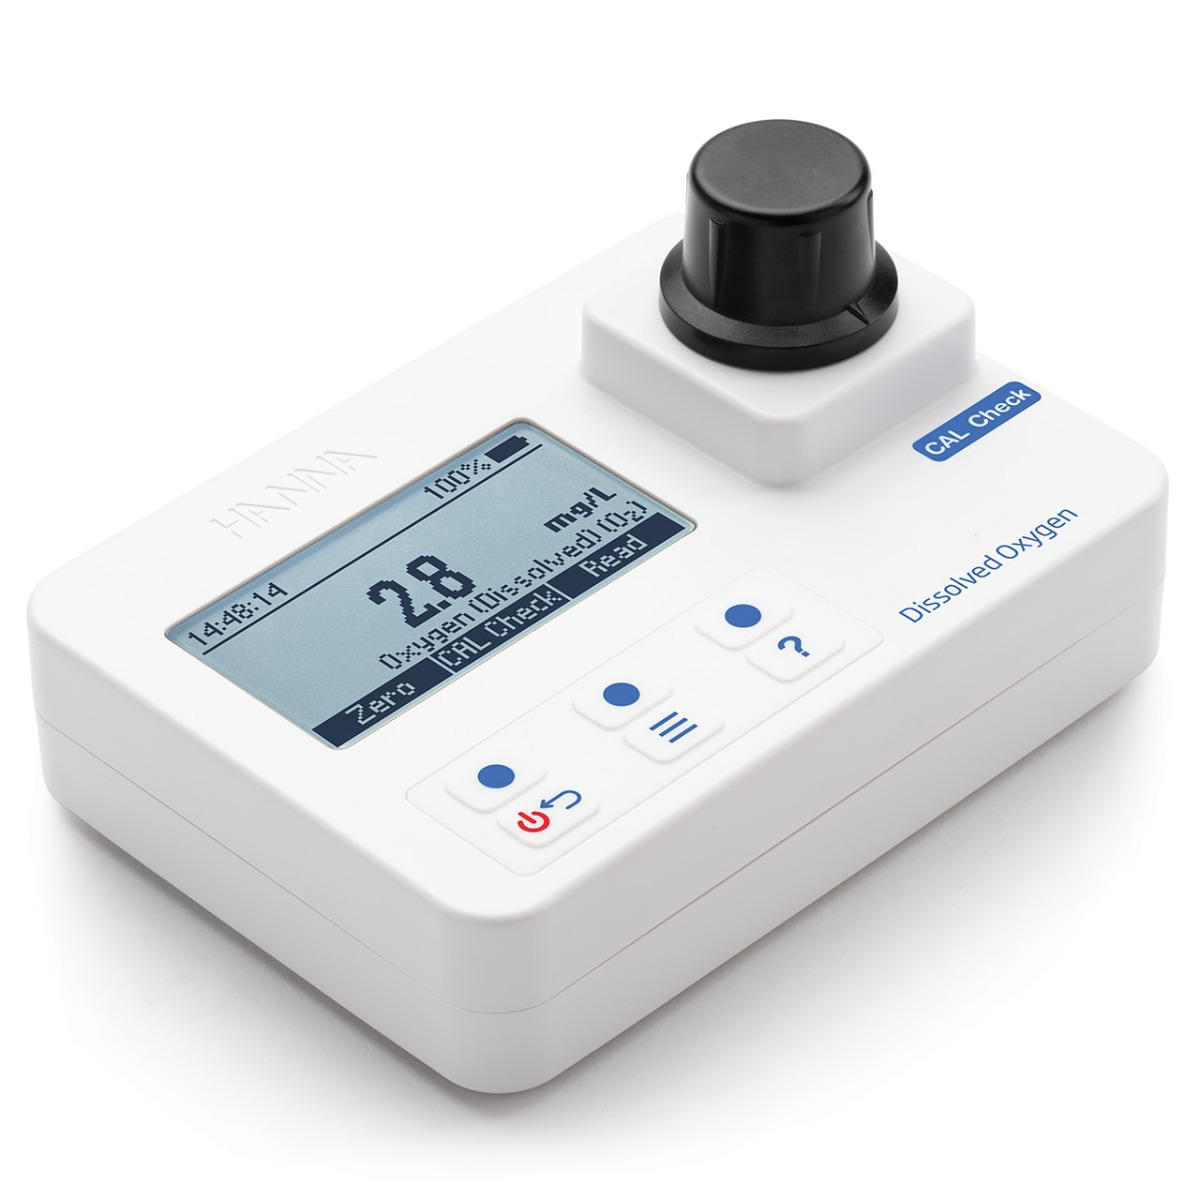 Dissolved Oxygen Portable Photometer with CAL Check – HI97732